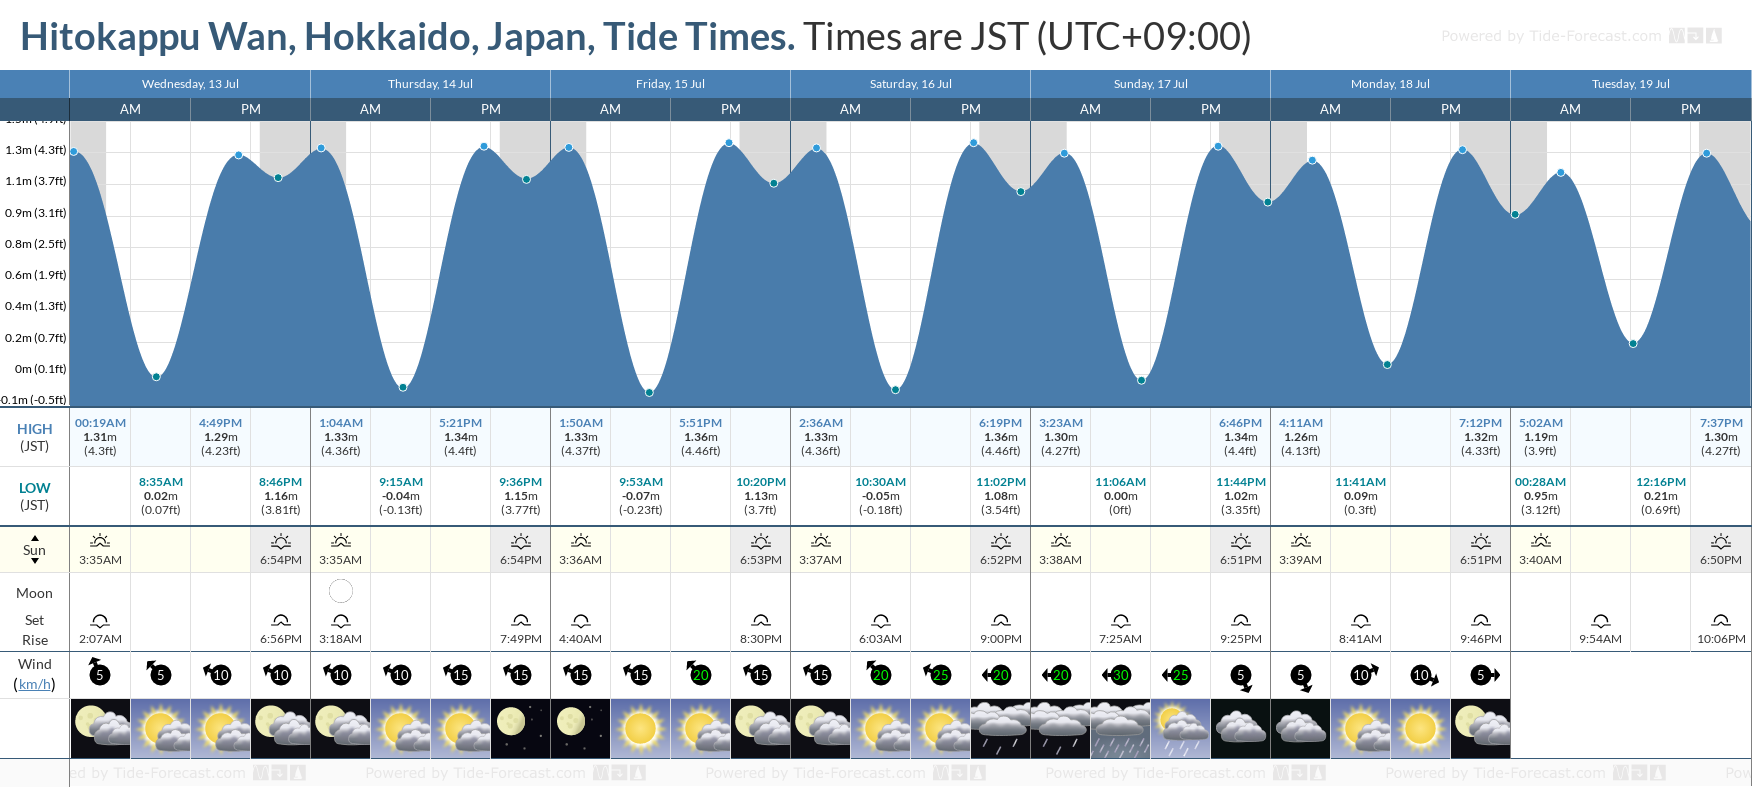 Hitokappu Wan, Hokkaido, Japan Tide Chart including high and low tide tide times for the next 7 days